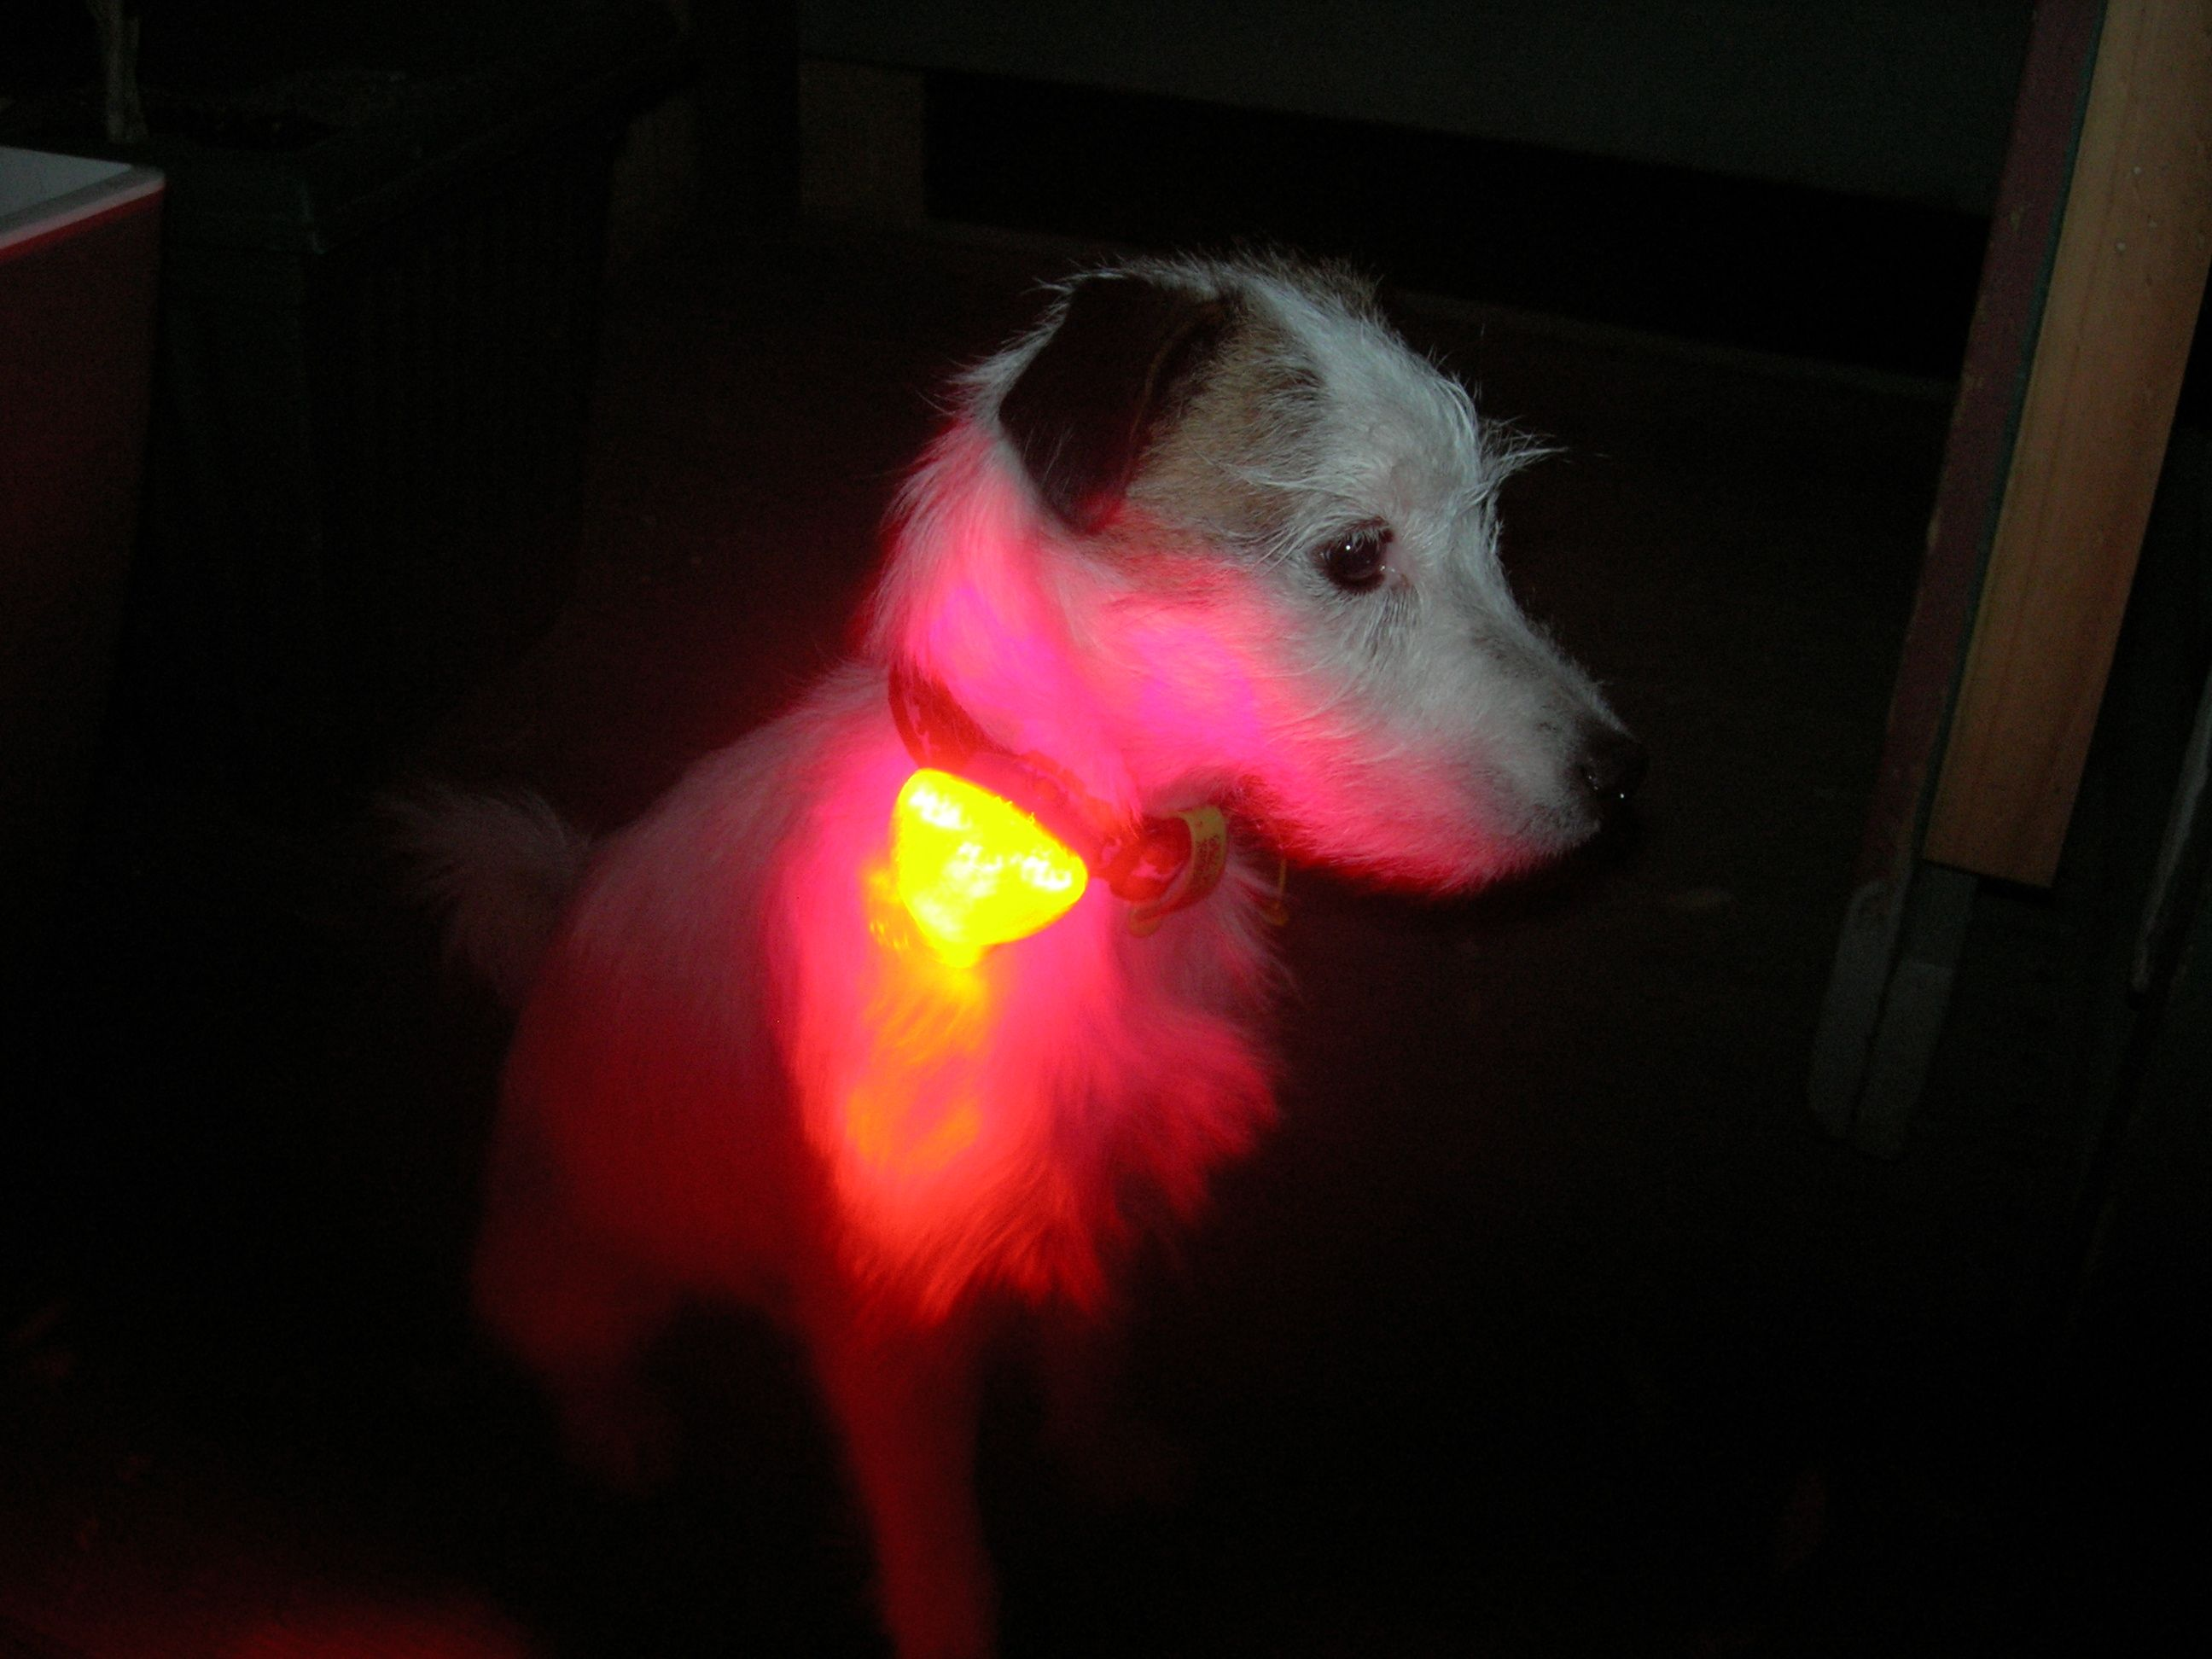 Ruffwear The Beacon This Dog Tested Light Is Sturdy Compact Watertight Lightweight And Easy To Use The Beacon Clips Onto All R Dog Gear Dog Test Ruffwear